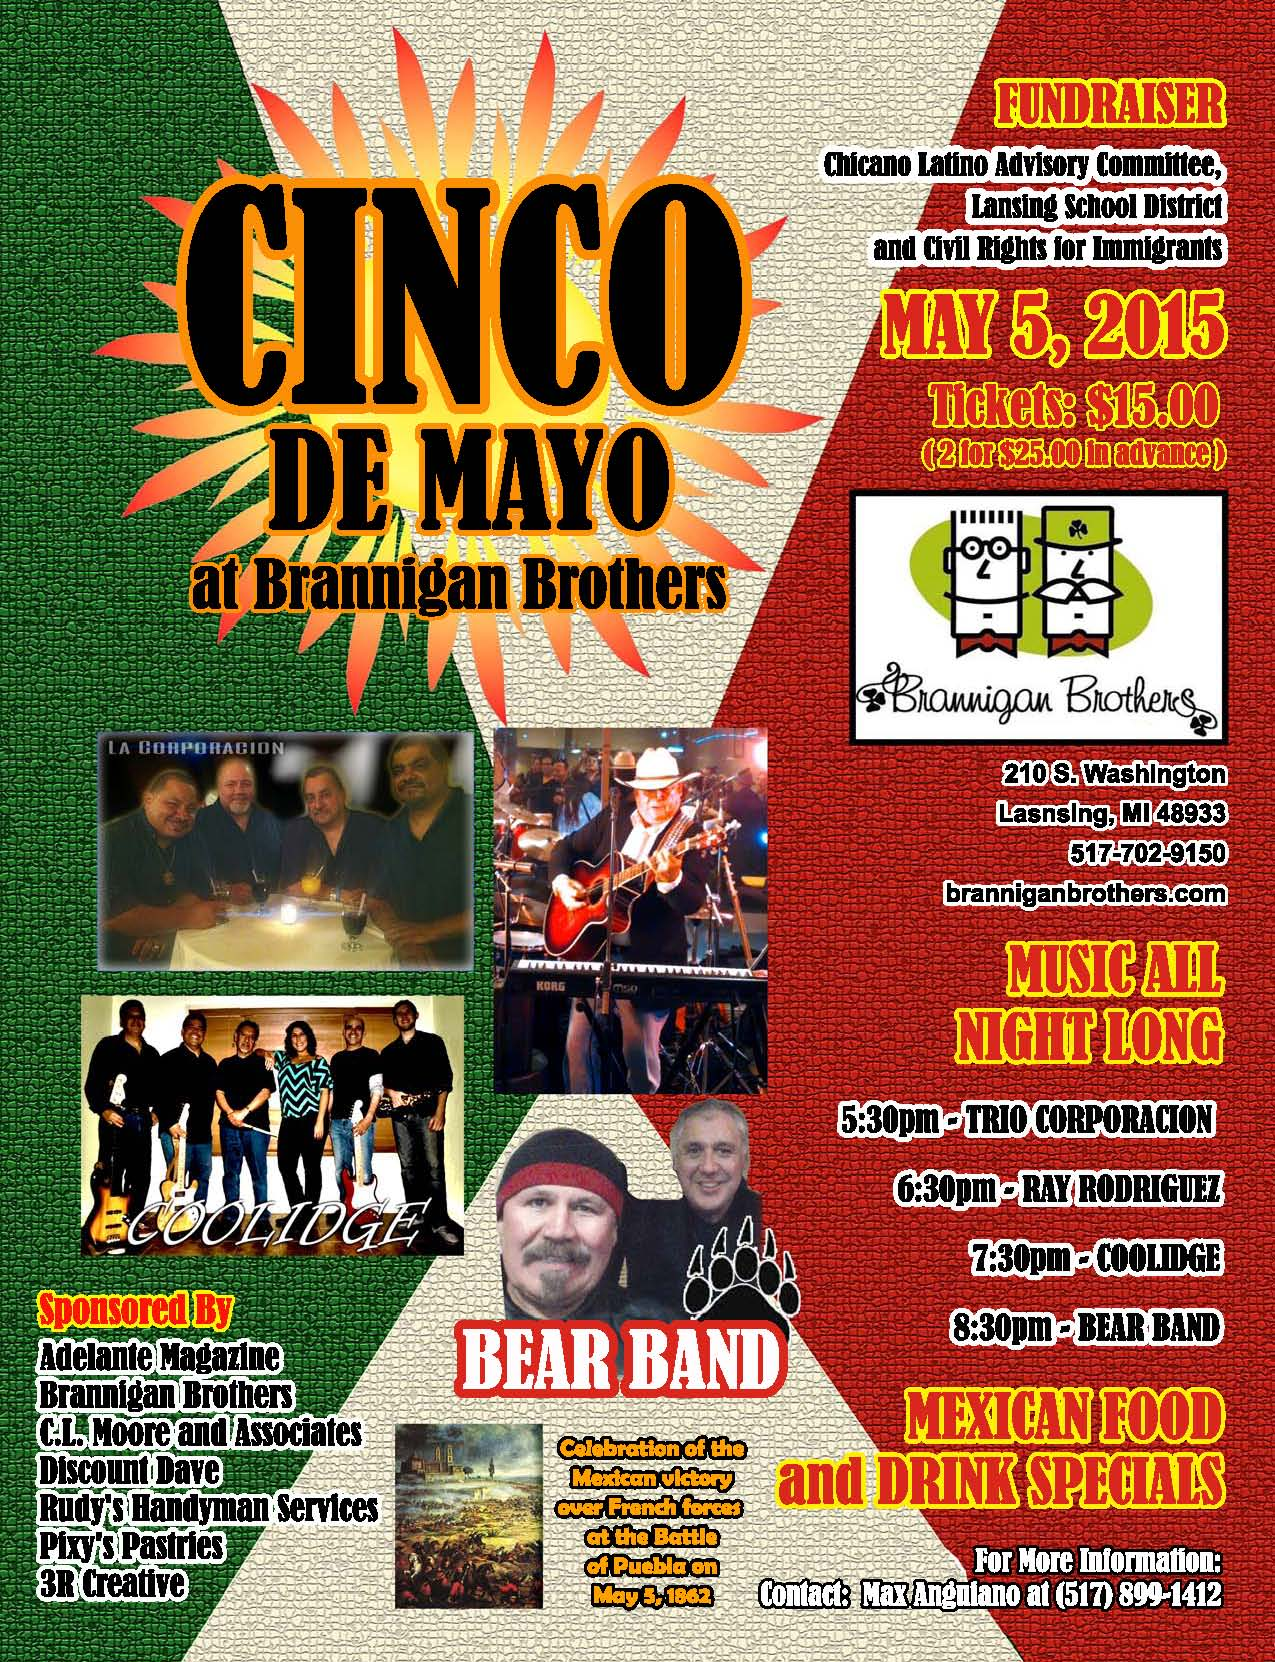 Join #LansingLatinos and community friends to support TWO great causes May 5!